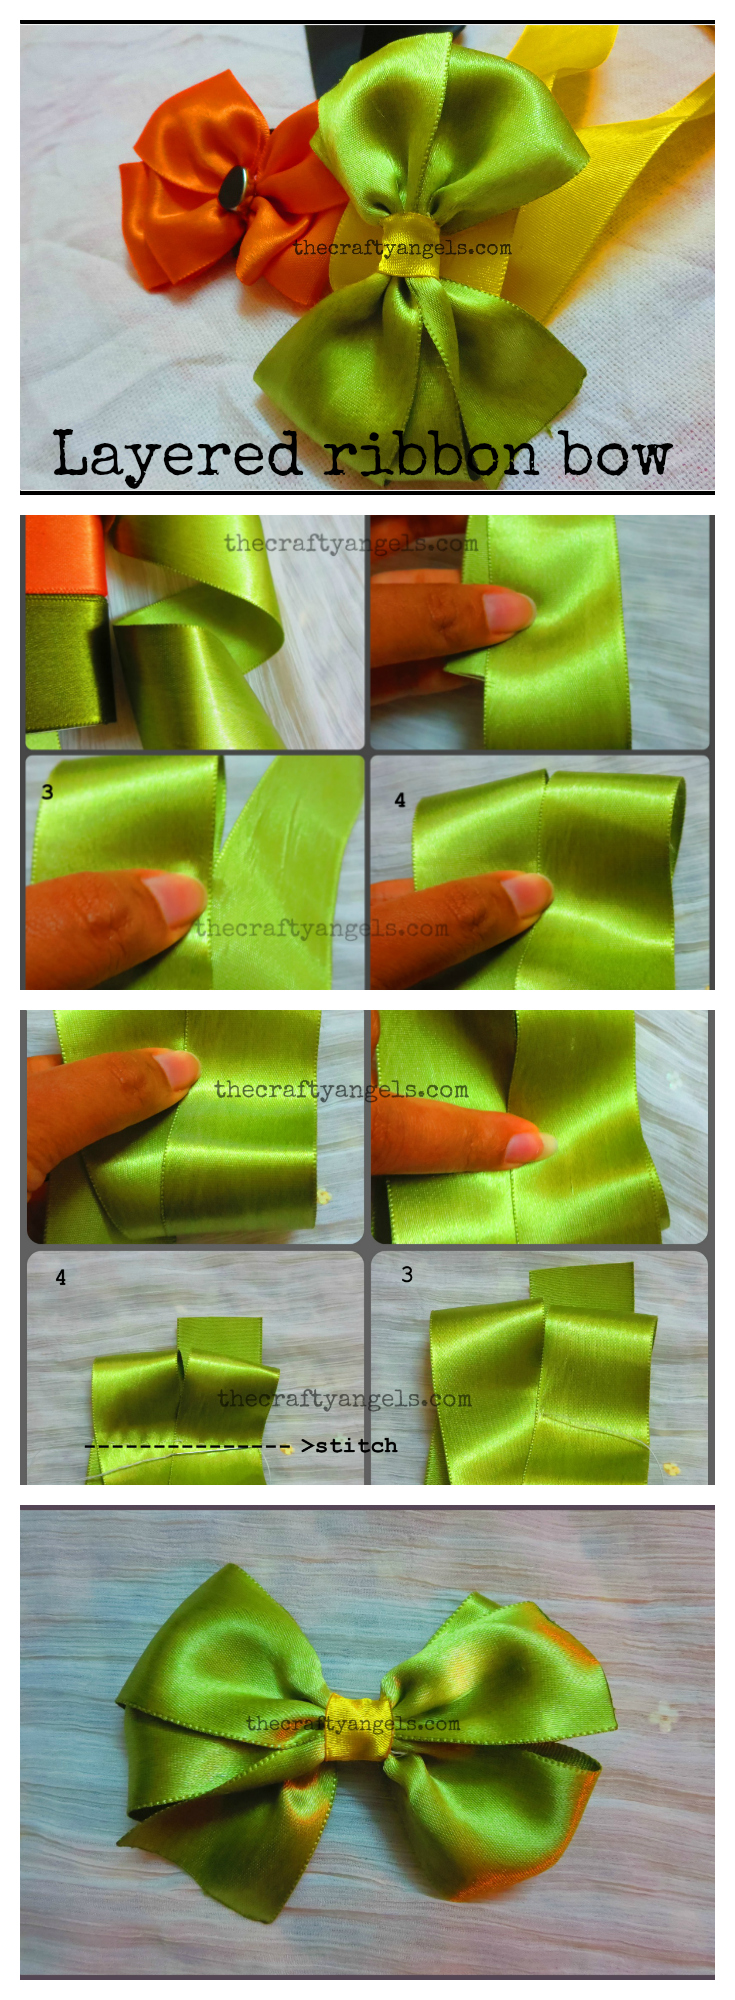 ribbon-bow-tutorial-collage